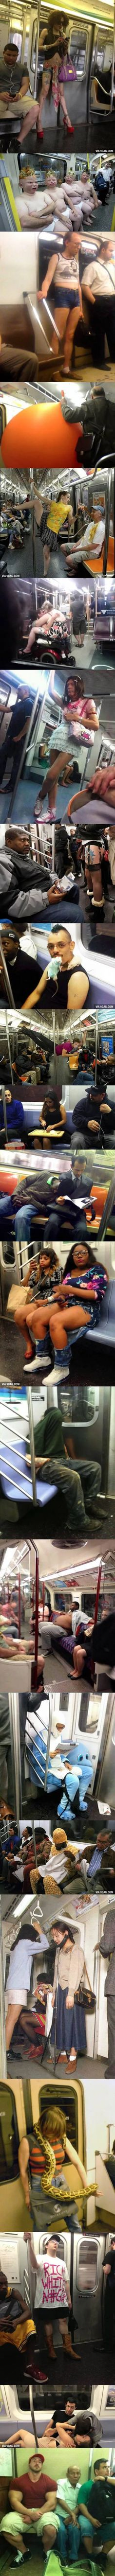 22 Photos That Show Why I Hate To Take The Subway! Wtf Funny, Funny Jokes, Hilarious, People Of Walmart, Stupid People, Best Funny Pictures, Funny Photos, Wtf Moments, U Bahn